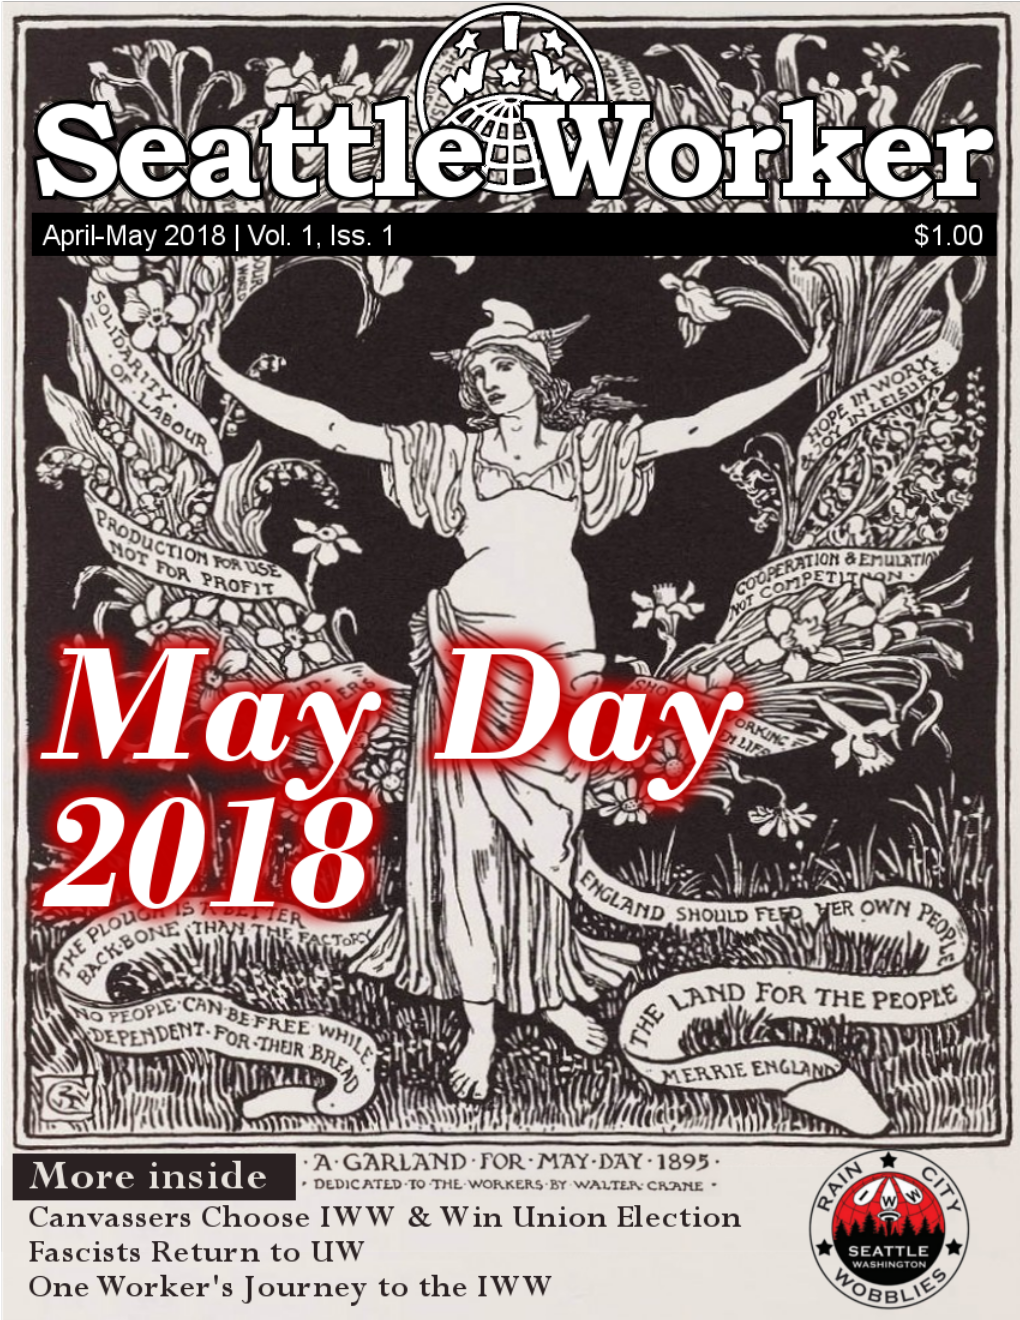 Seattle Worker first issue for May Day 2018!